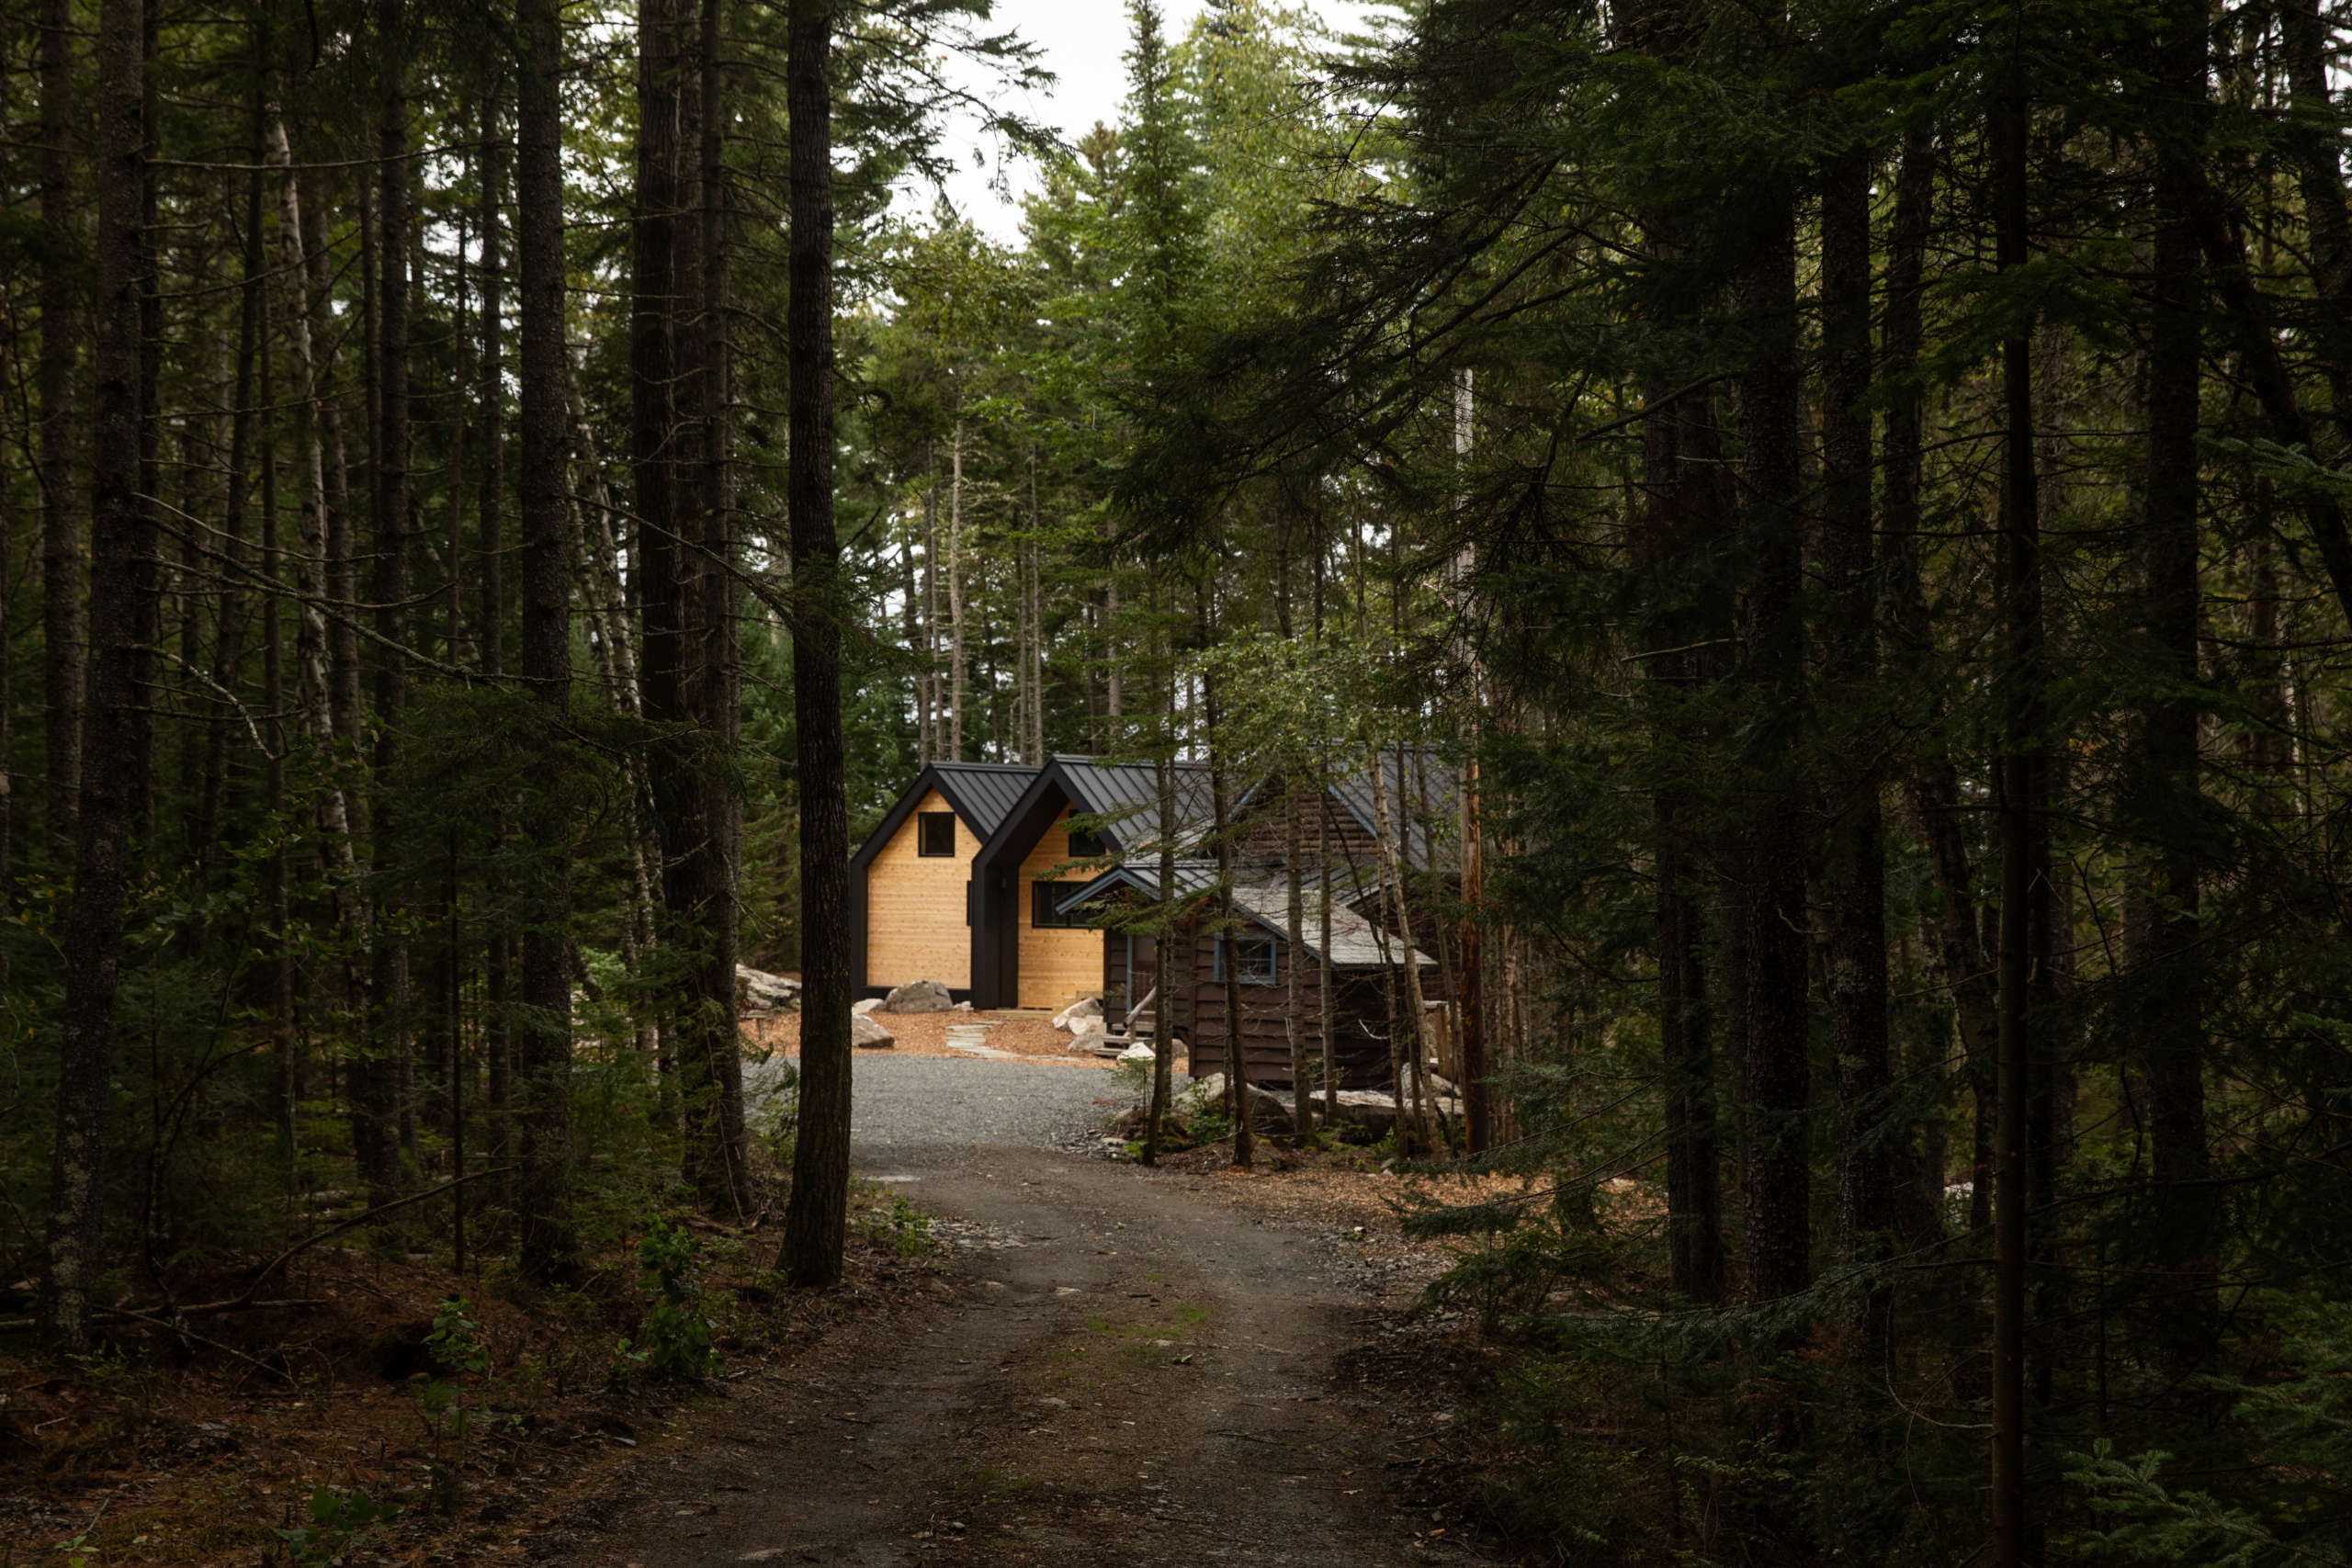 Rock Camp: Old-Meets-New Lake Cabins by an Upstart Maine Architect - Remodelista